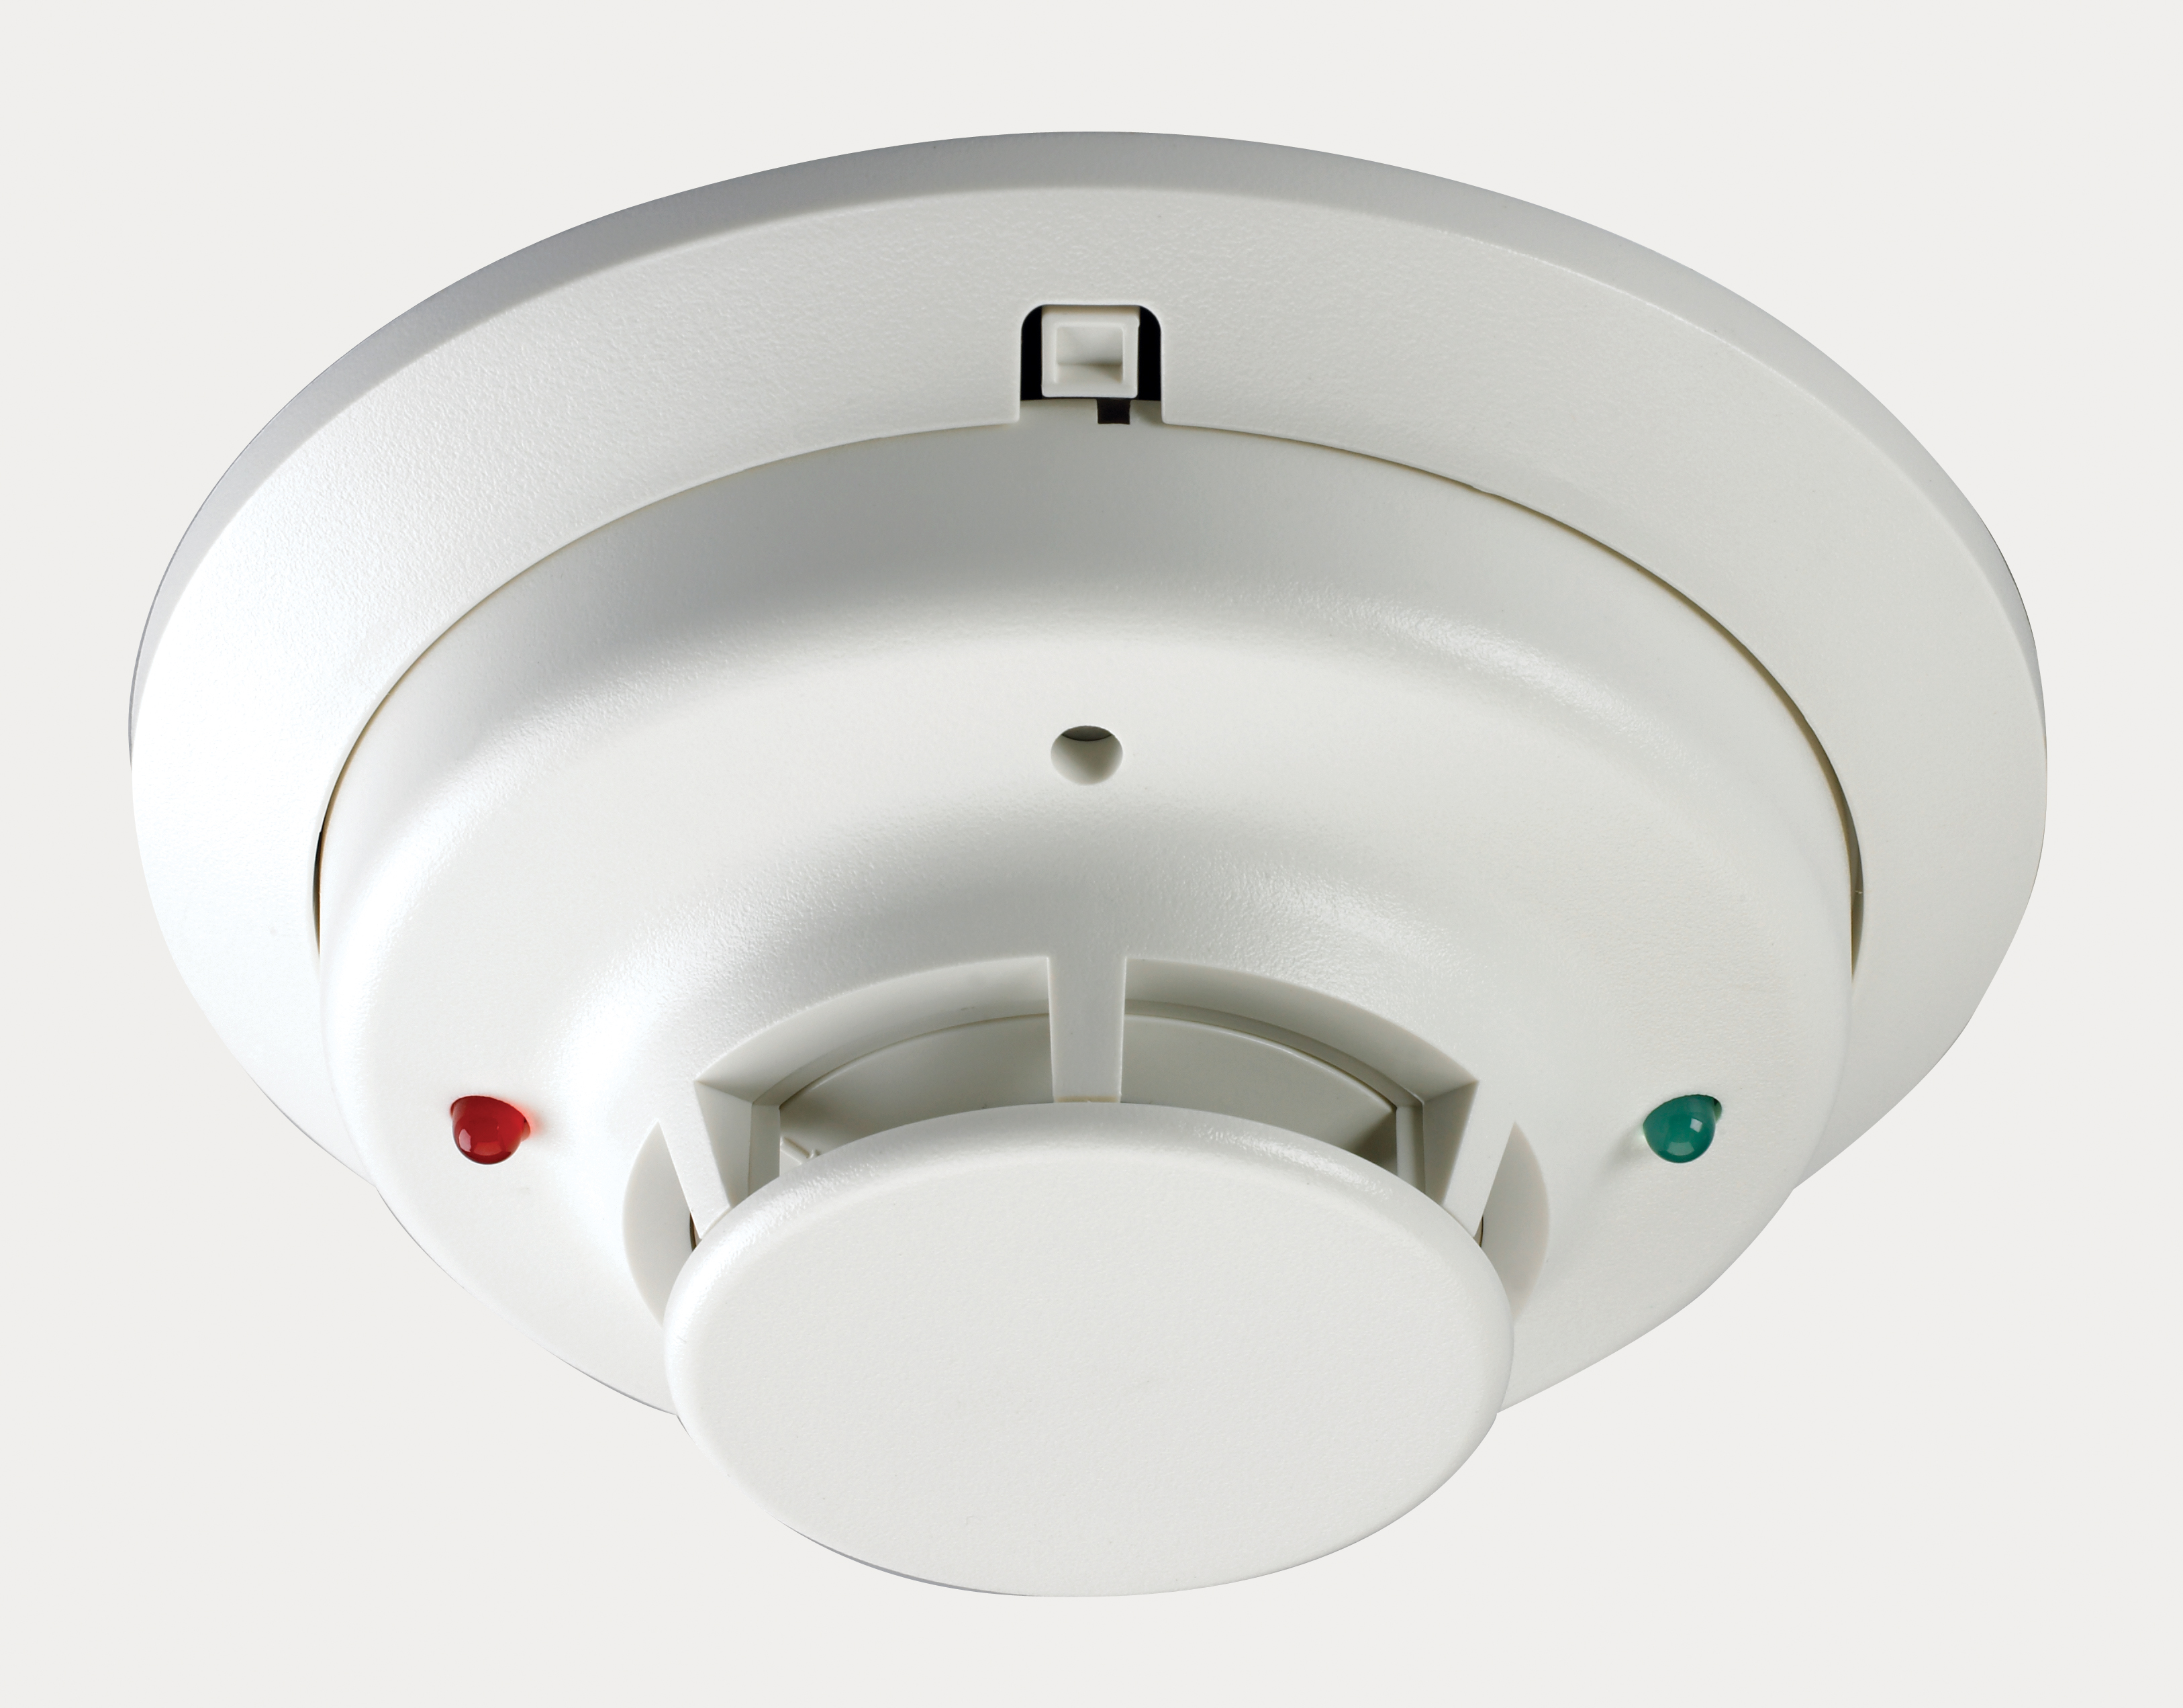 Install/Replace Smoke Detector